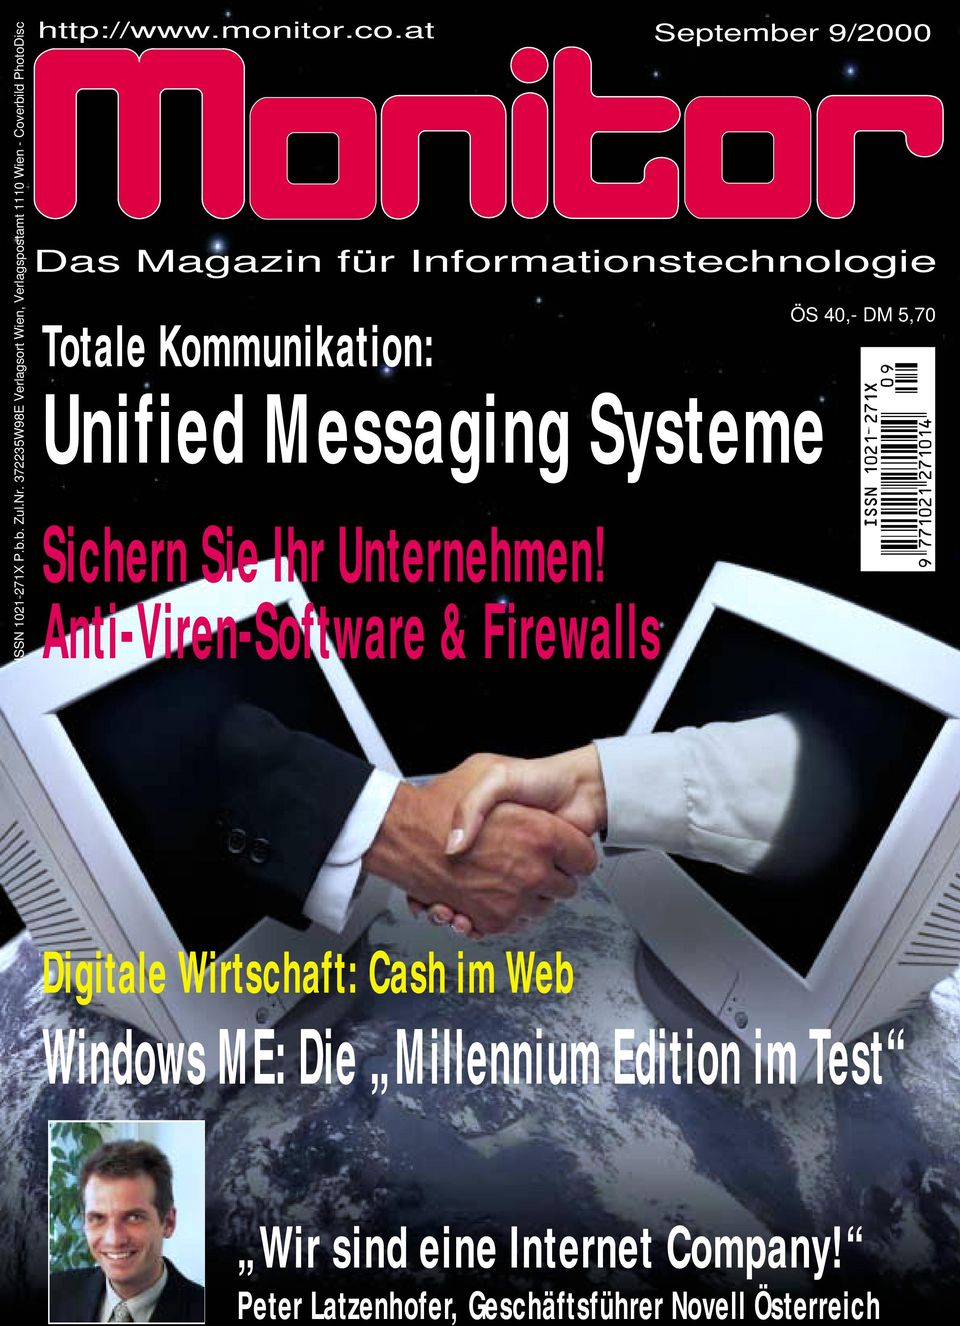 at September 9/2000 Das Magazin für Informationstechnologie Totale Kommunikation: Unified Messaging Systeme Sichern